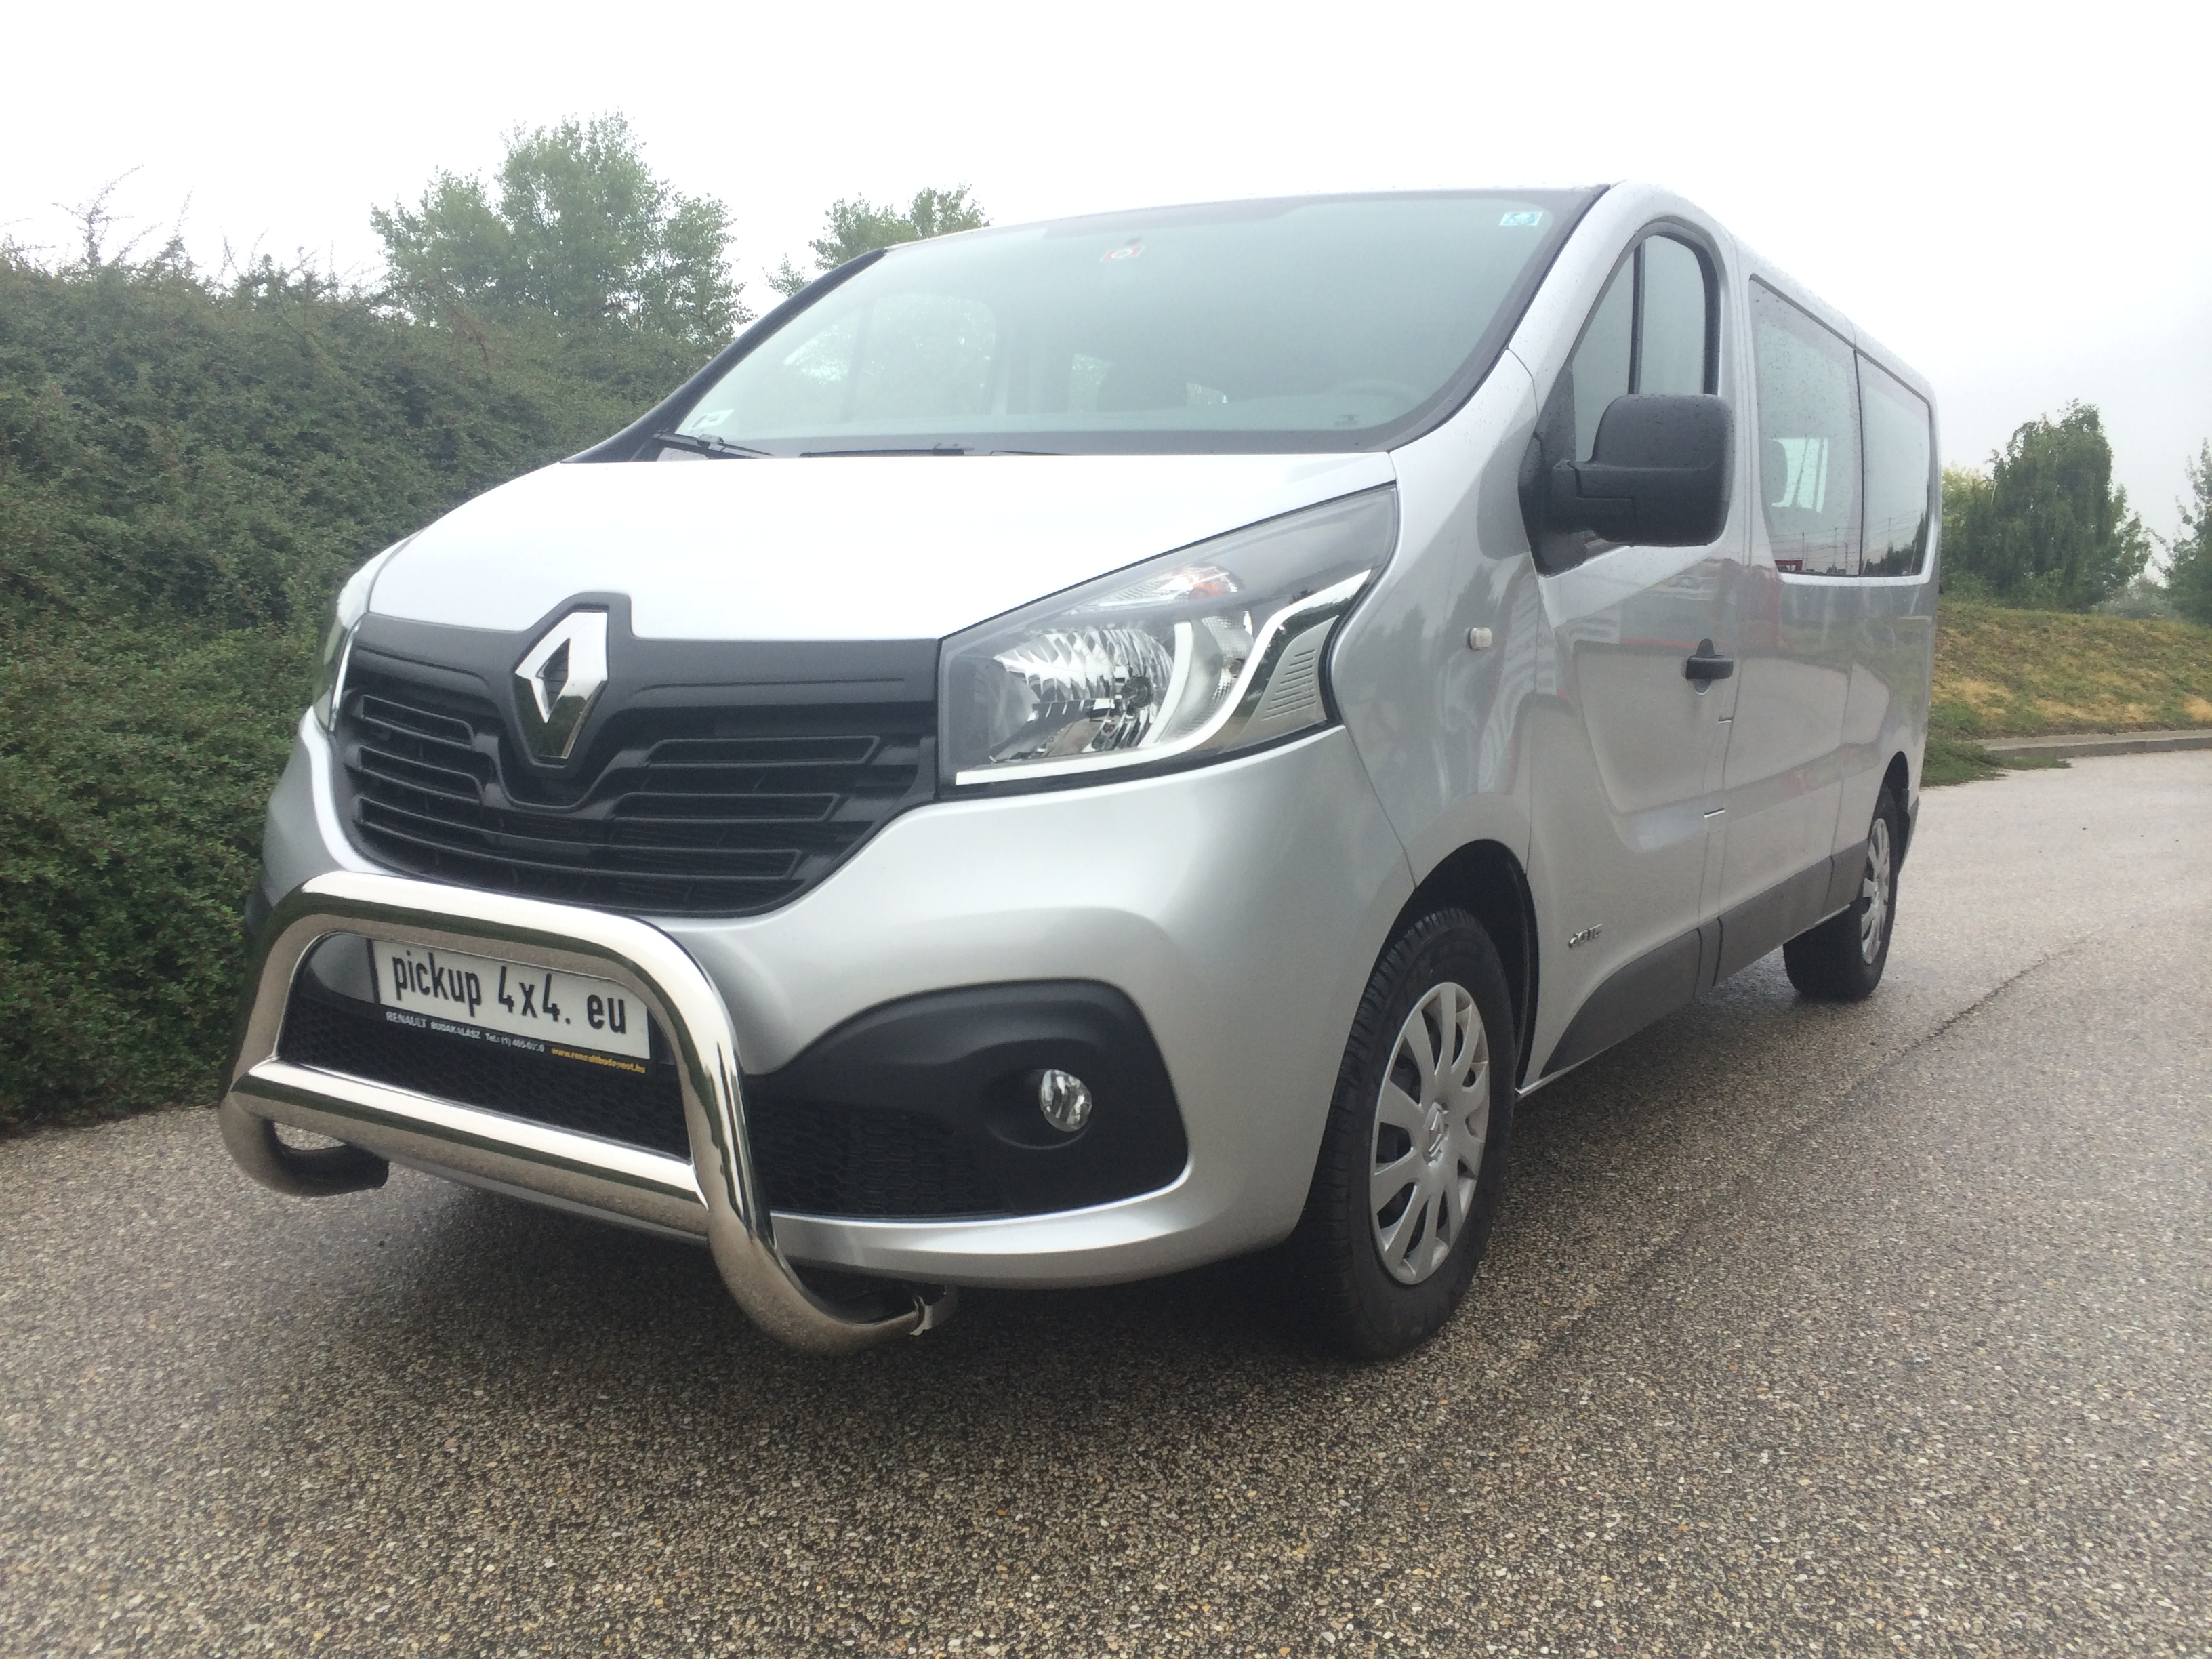 renault trafic opel vivaro nissan nv300 primastar 2014 standard. Black Bedroom Furniture Sets. Home Design Ideas